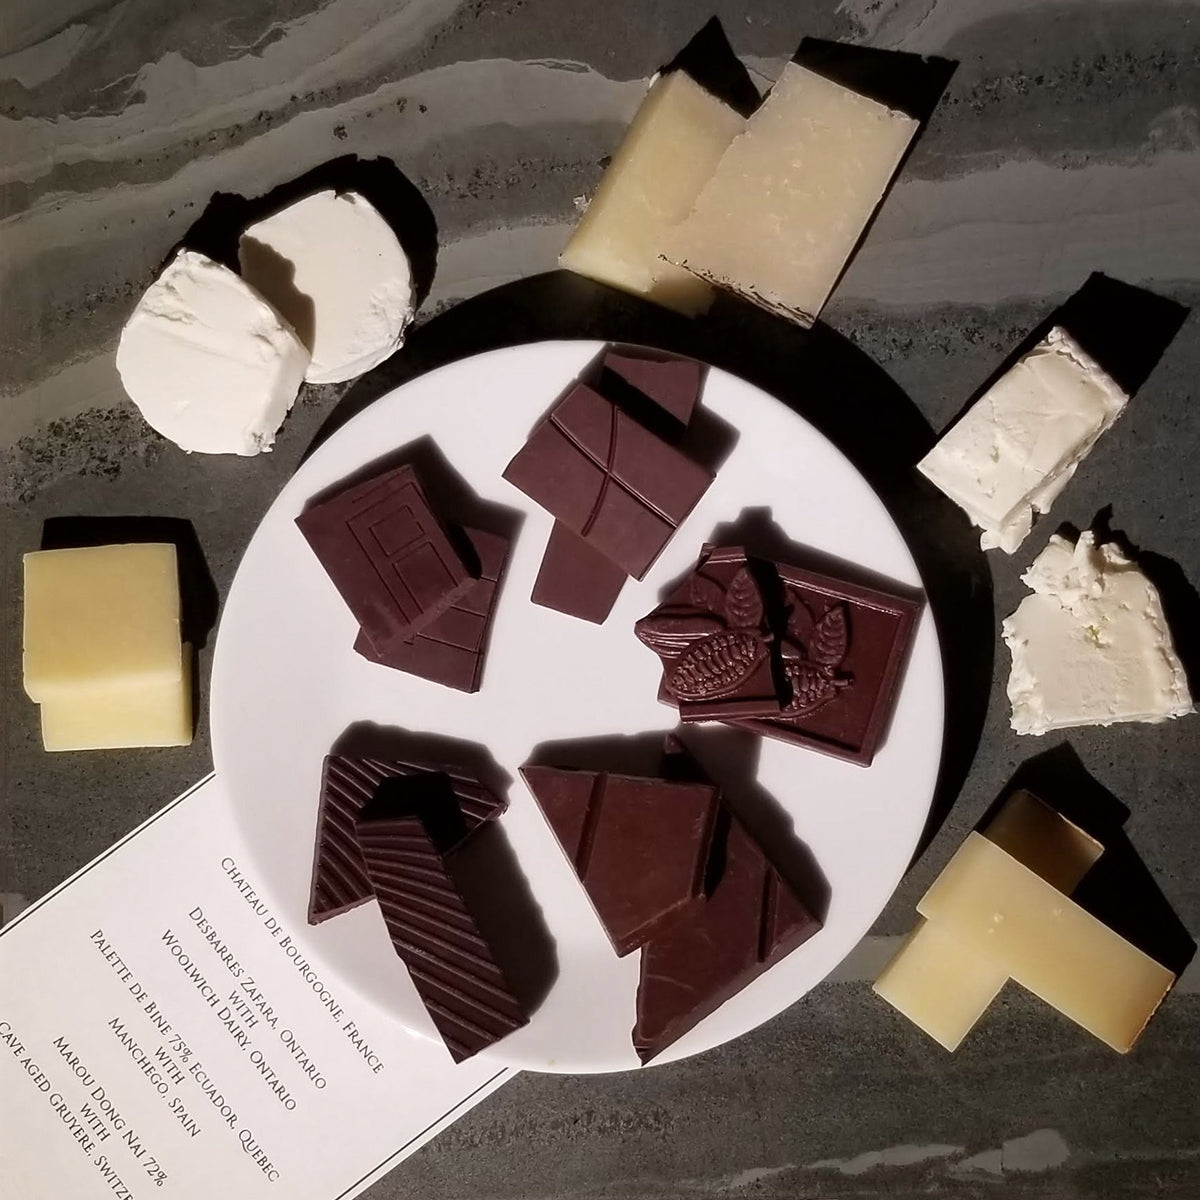 chocolate and cheese pairing notes, JoJo CoCo, Canada